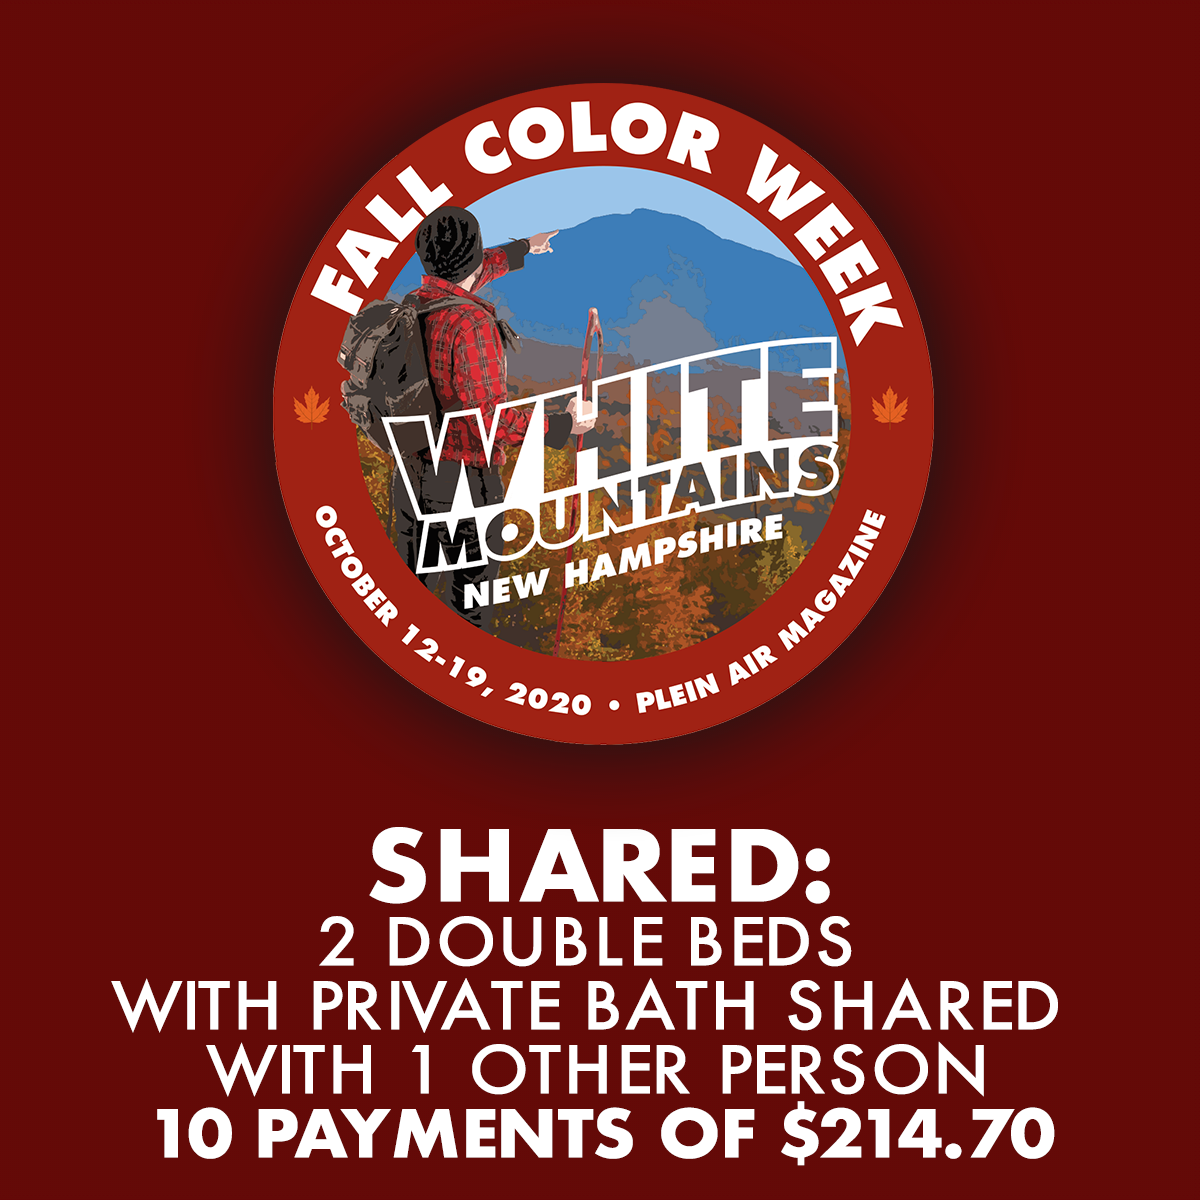 2020 Fall Color Week - Shared: 2 Double Beds with Private Bath Shared with 1 Other Person *** 10 PAYMENT PLAN ***